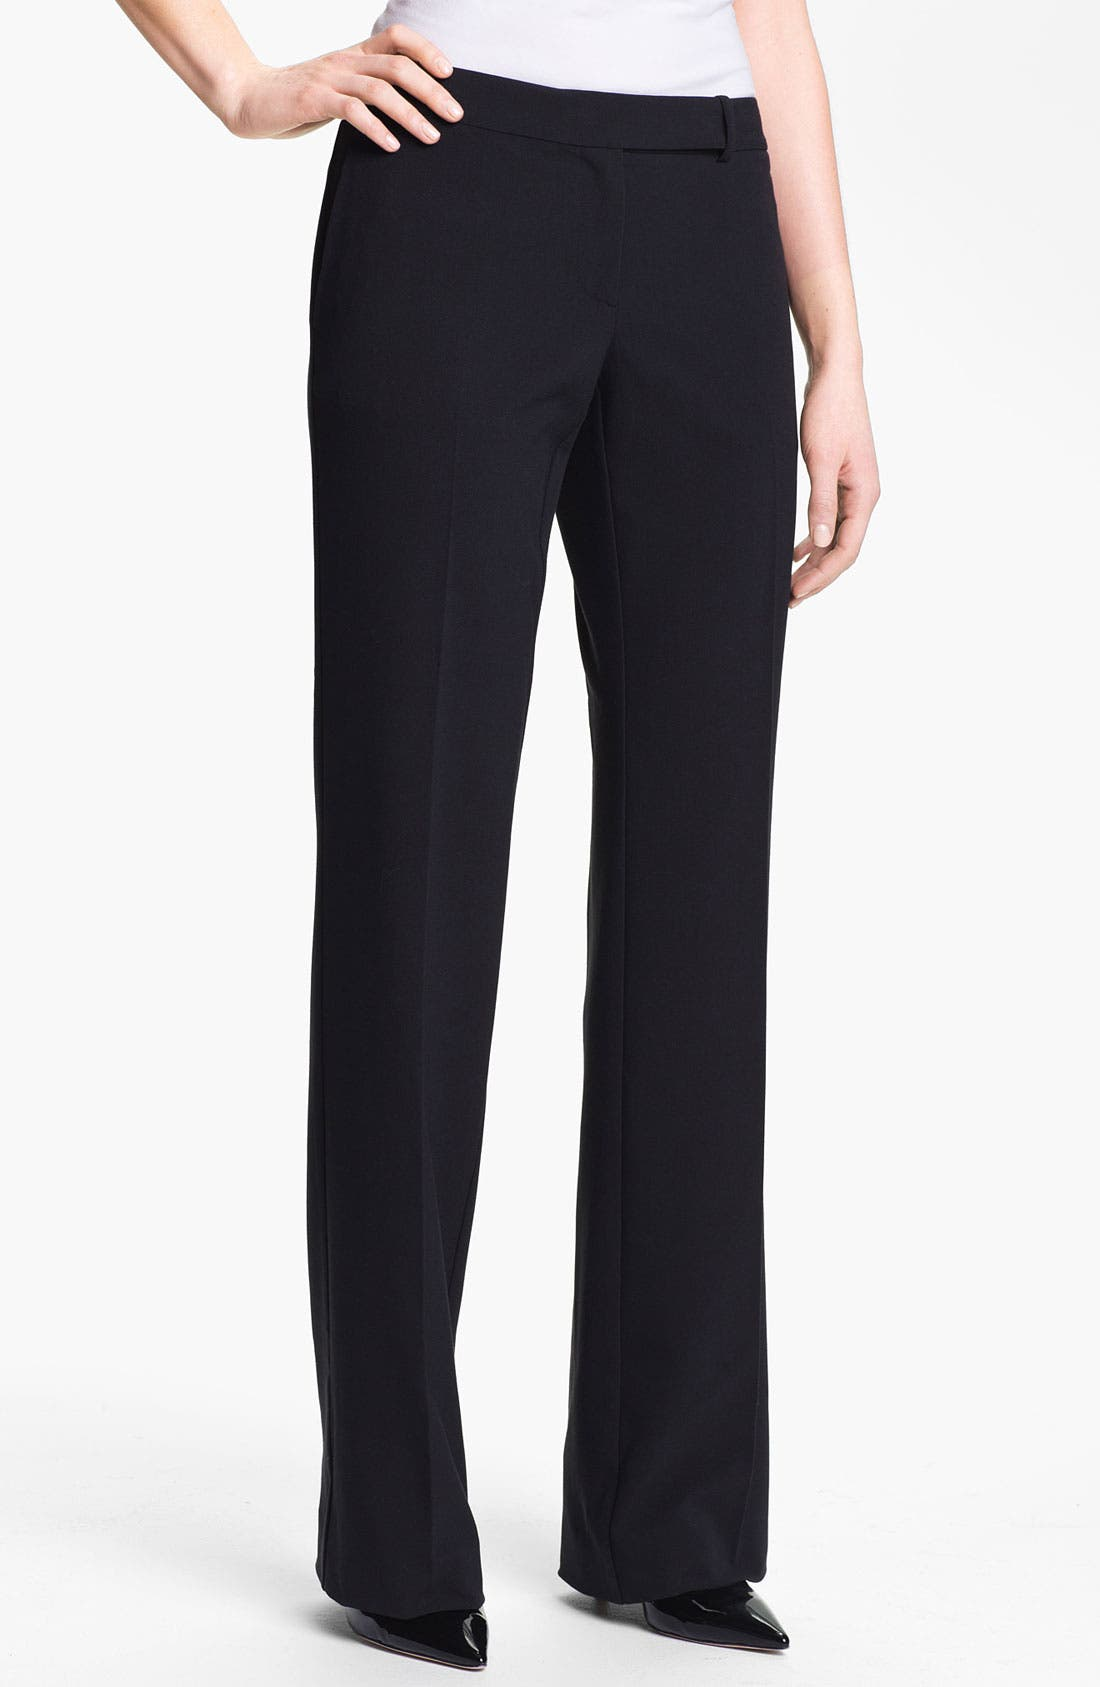 Alternate Image 1 Selected - Isaac Mizrahi New York Stretch Woven Trousers